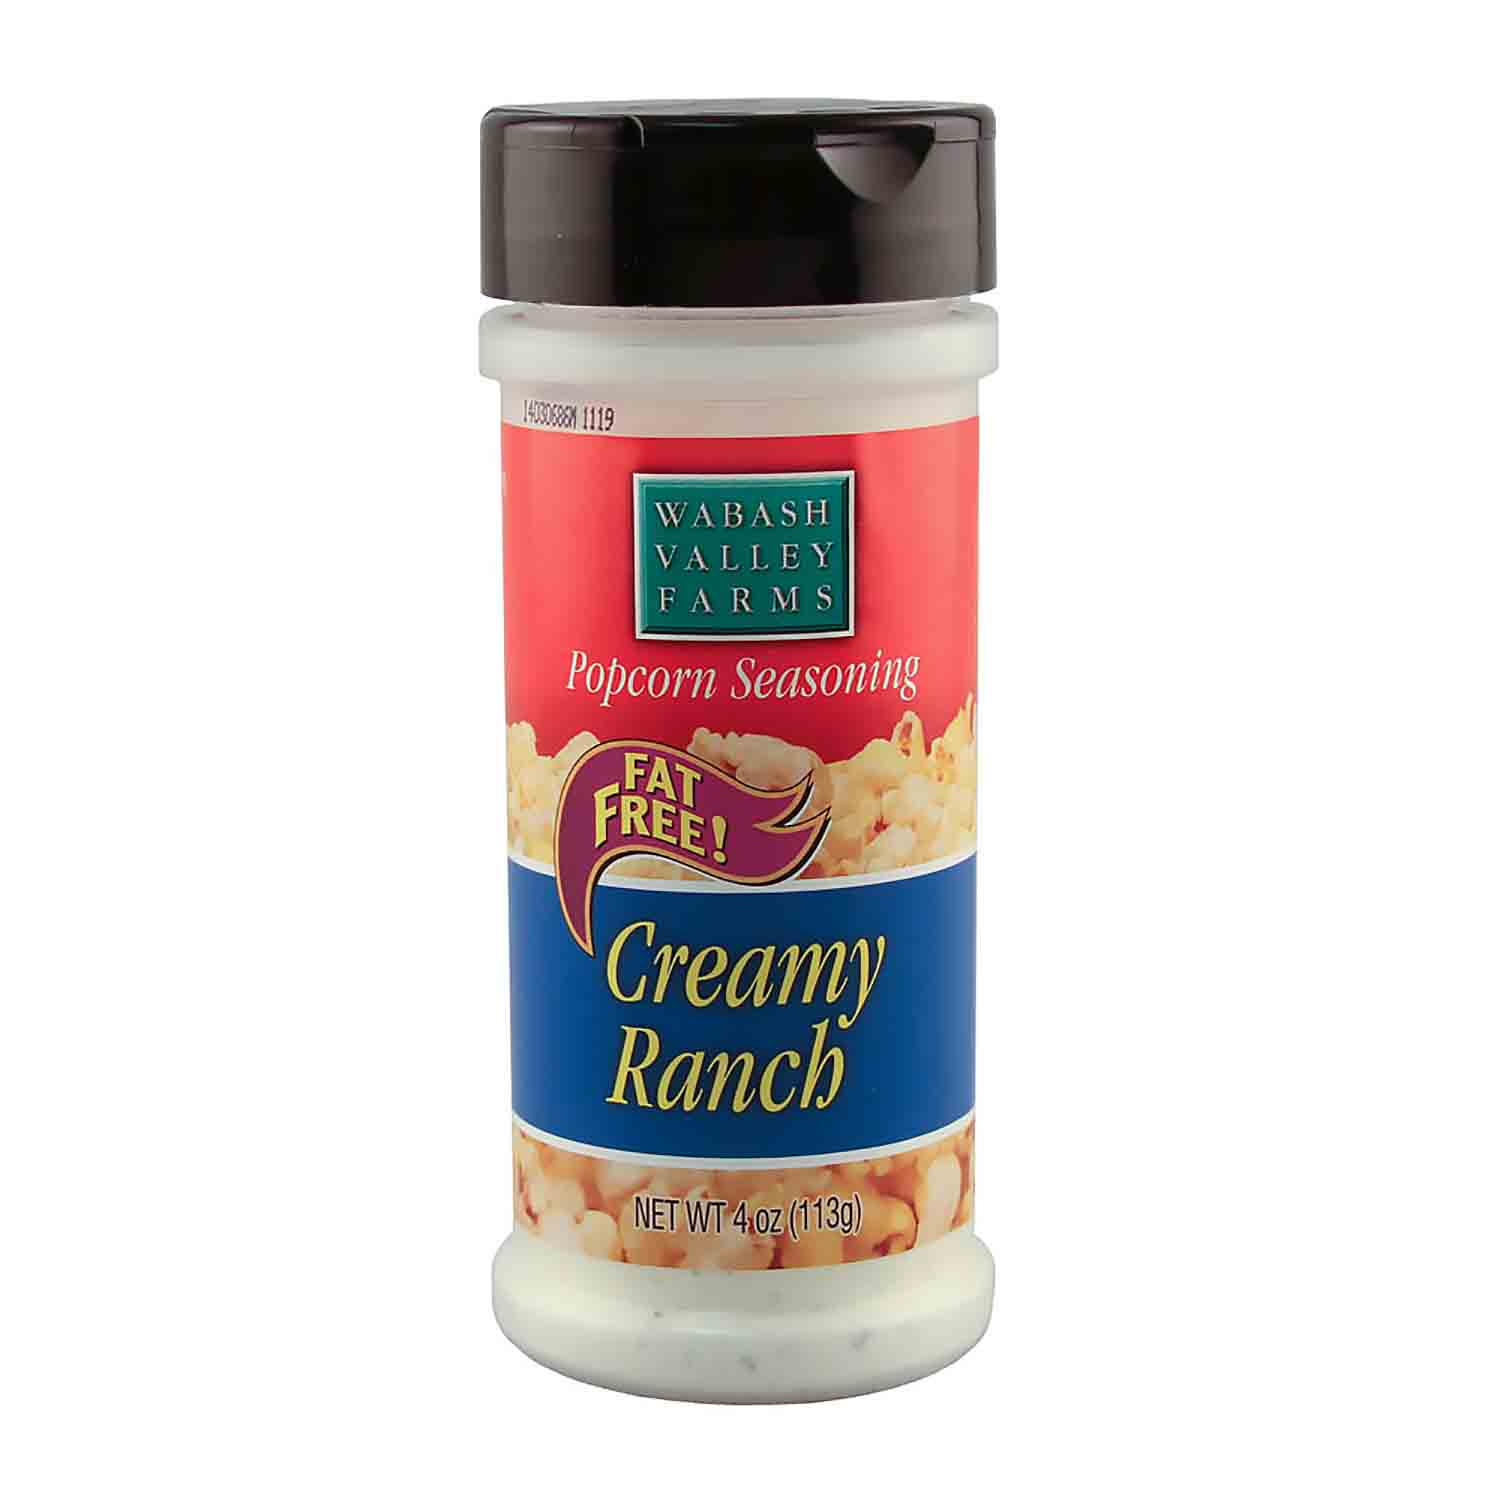 Creamy Ranch Popcorn Seasoning